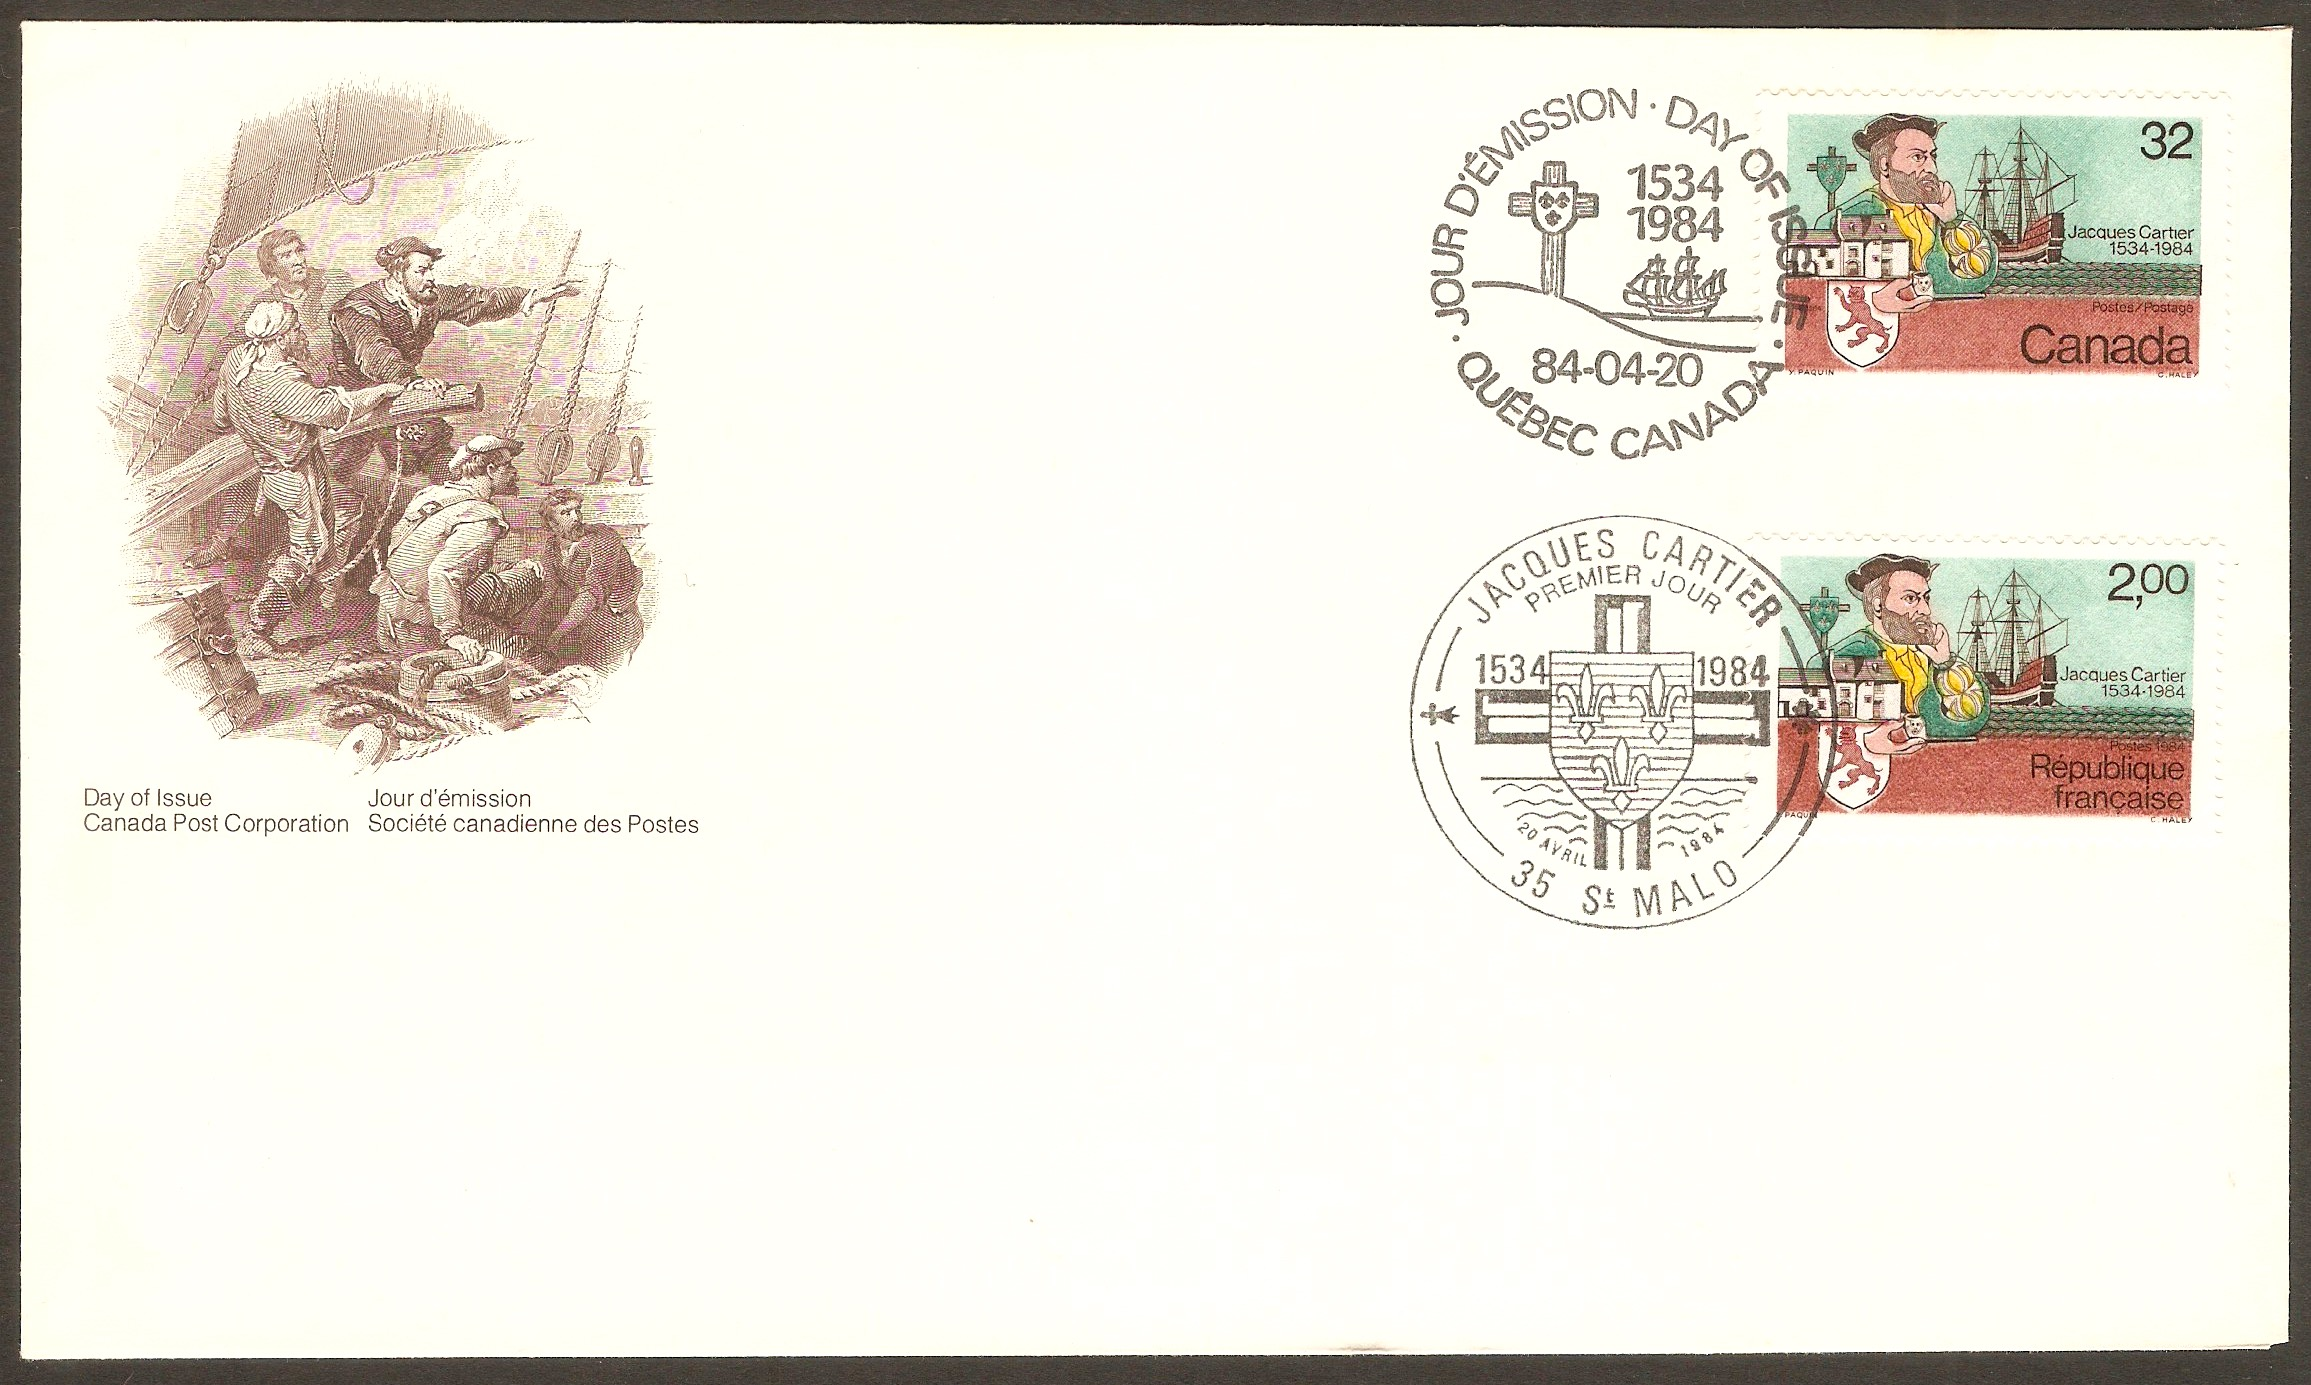 Canada 1984 Jacques Cartier Anniversary FDC.